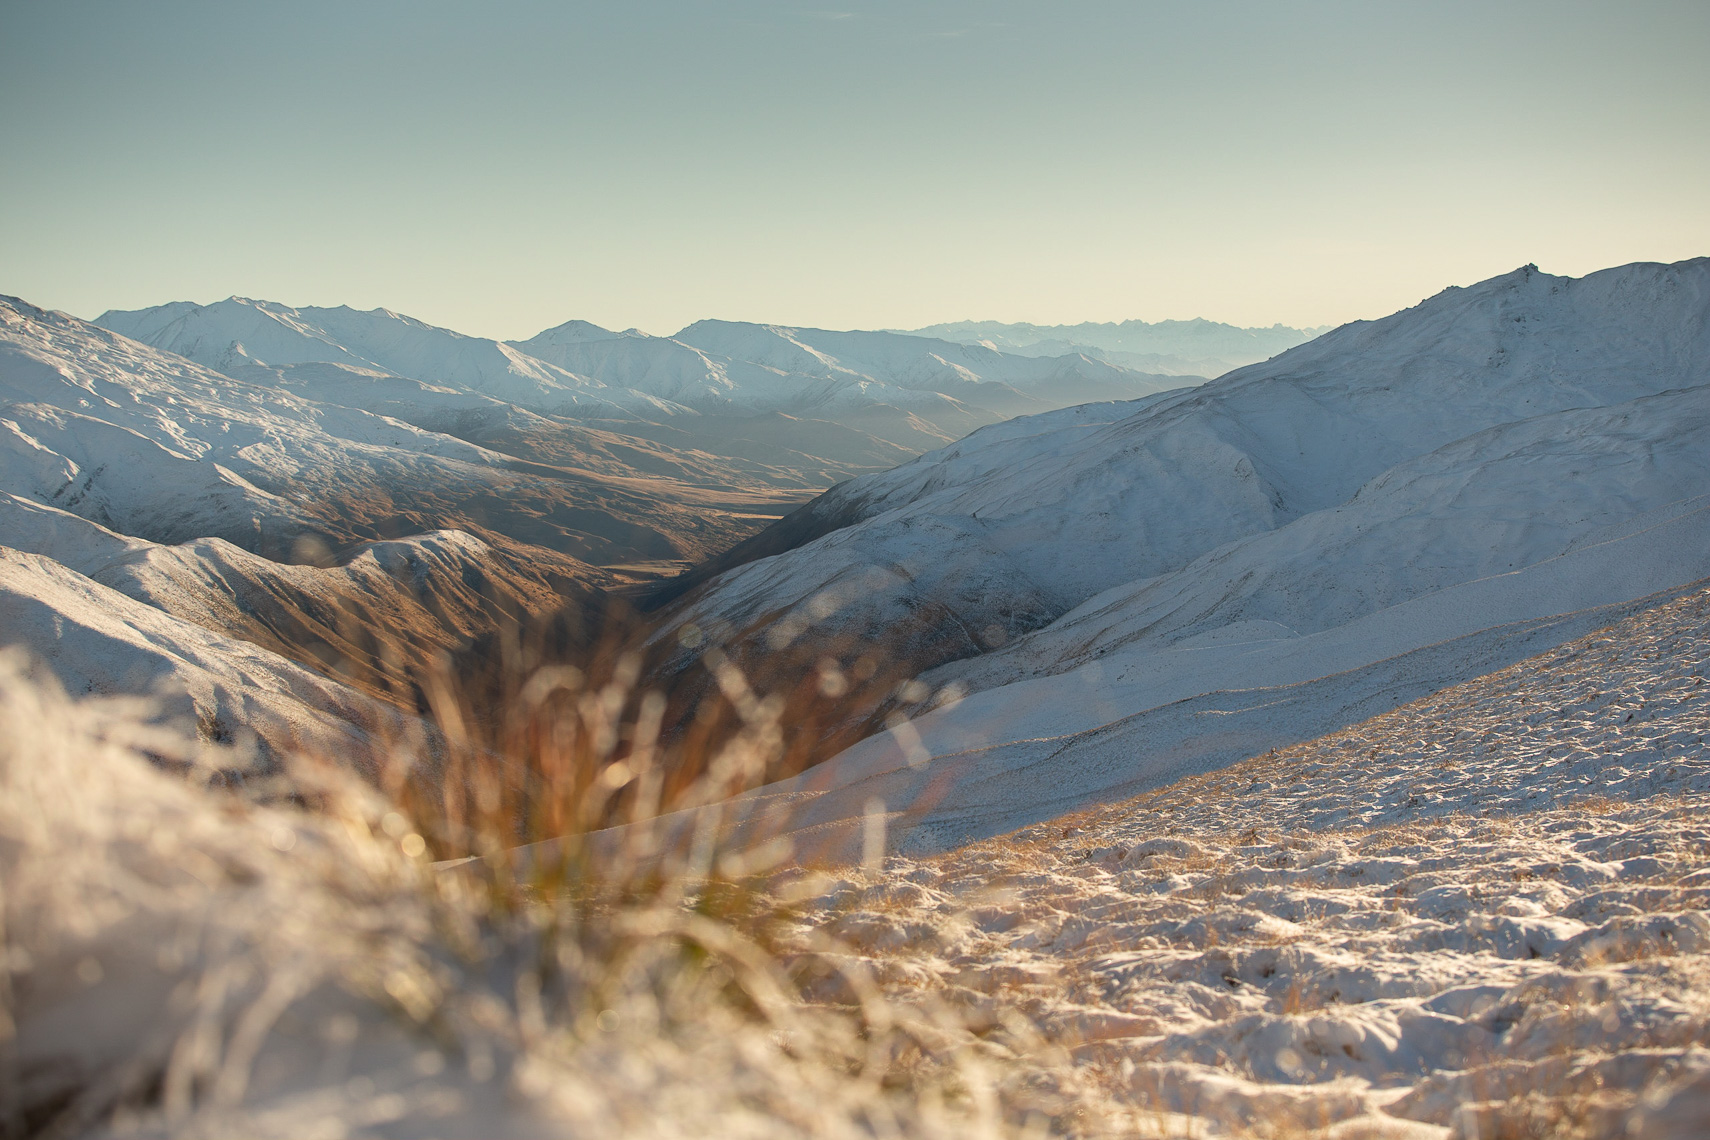 Early snowfall in the Cardrona Valley by Paul Green Photographer